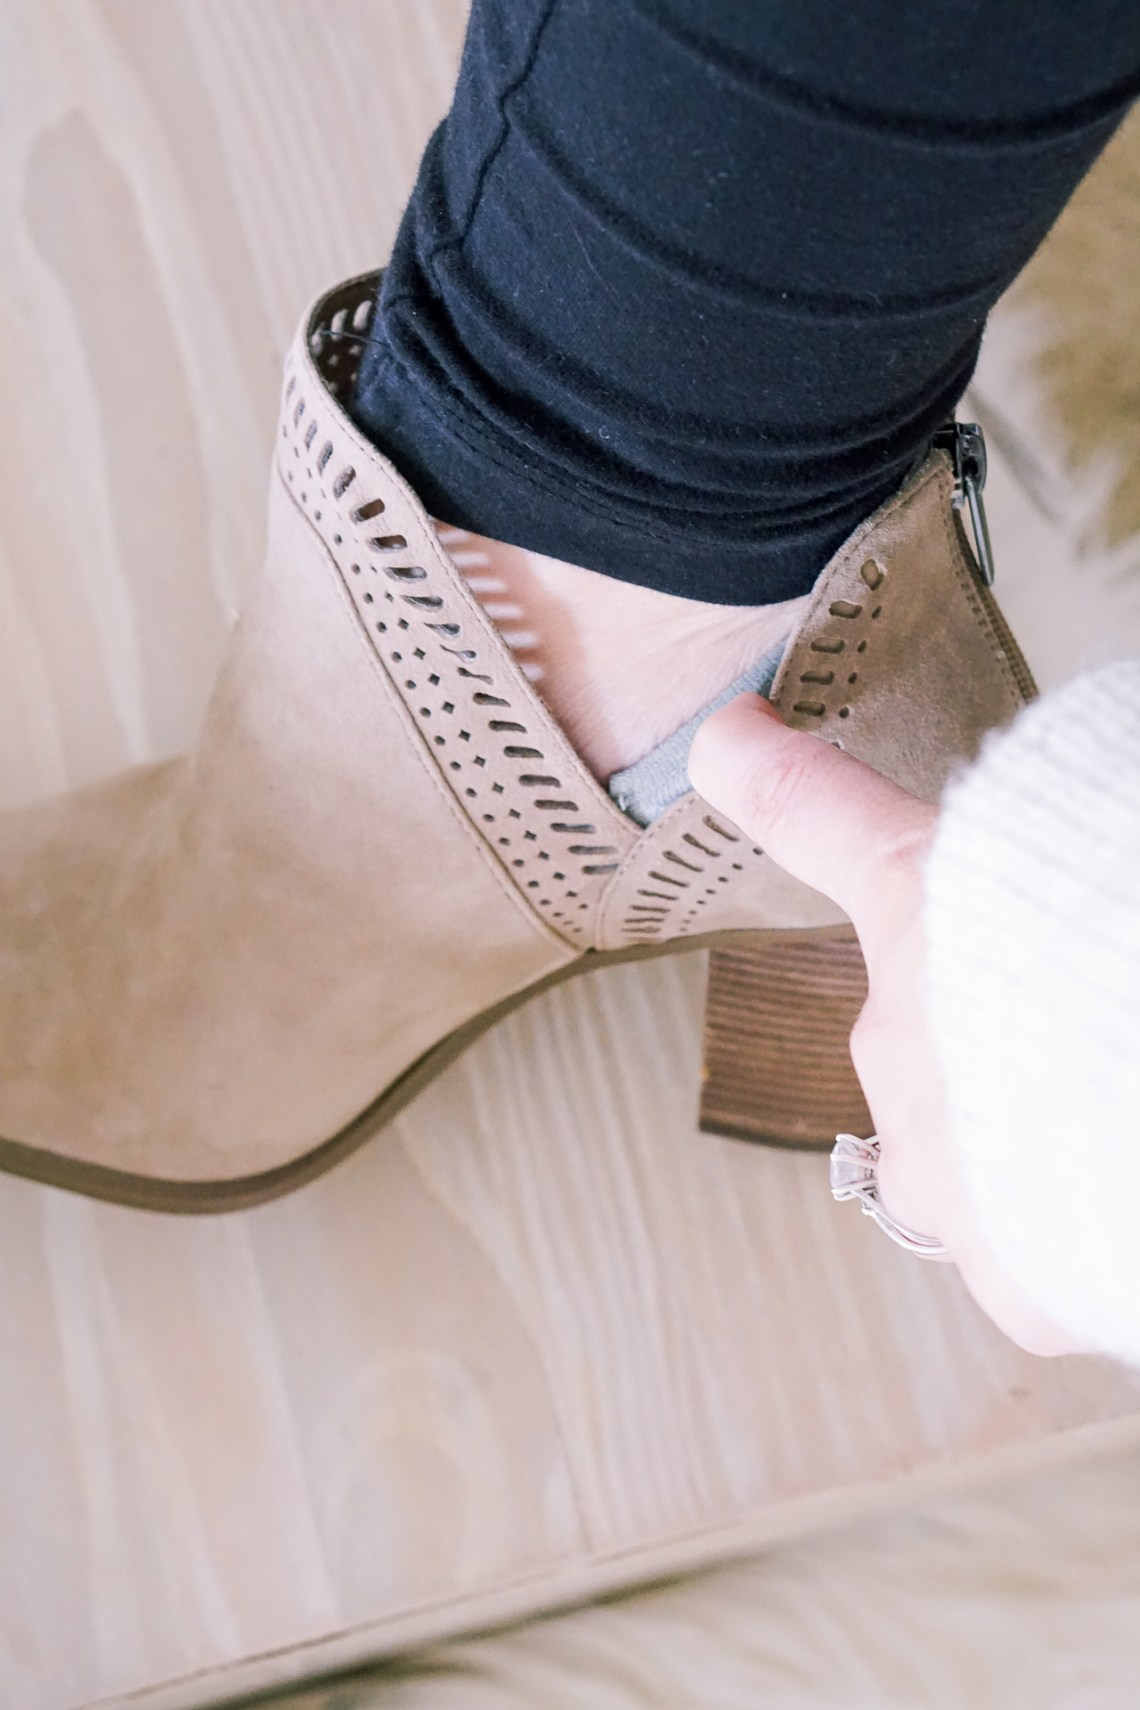 Fall Footwear Tips – How to Stay Stylish and Comfortable on The Go